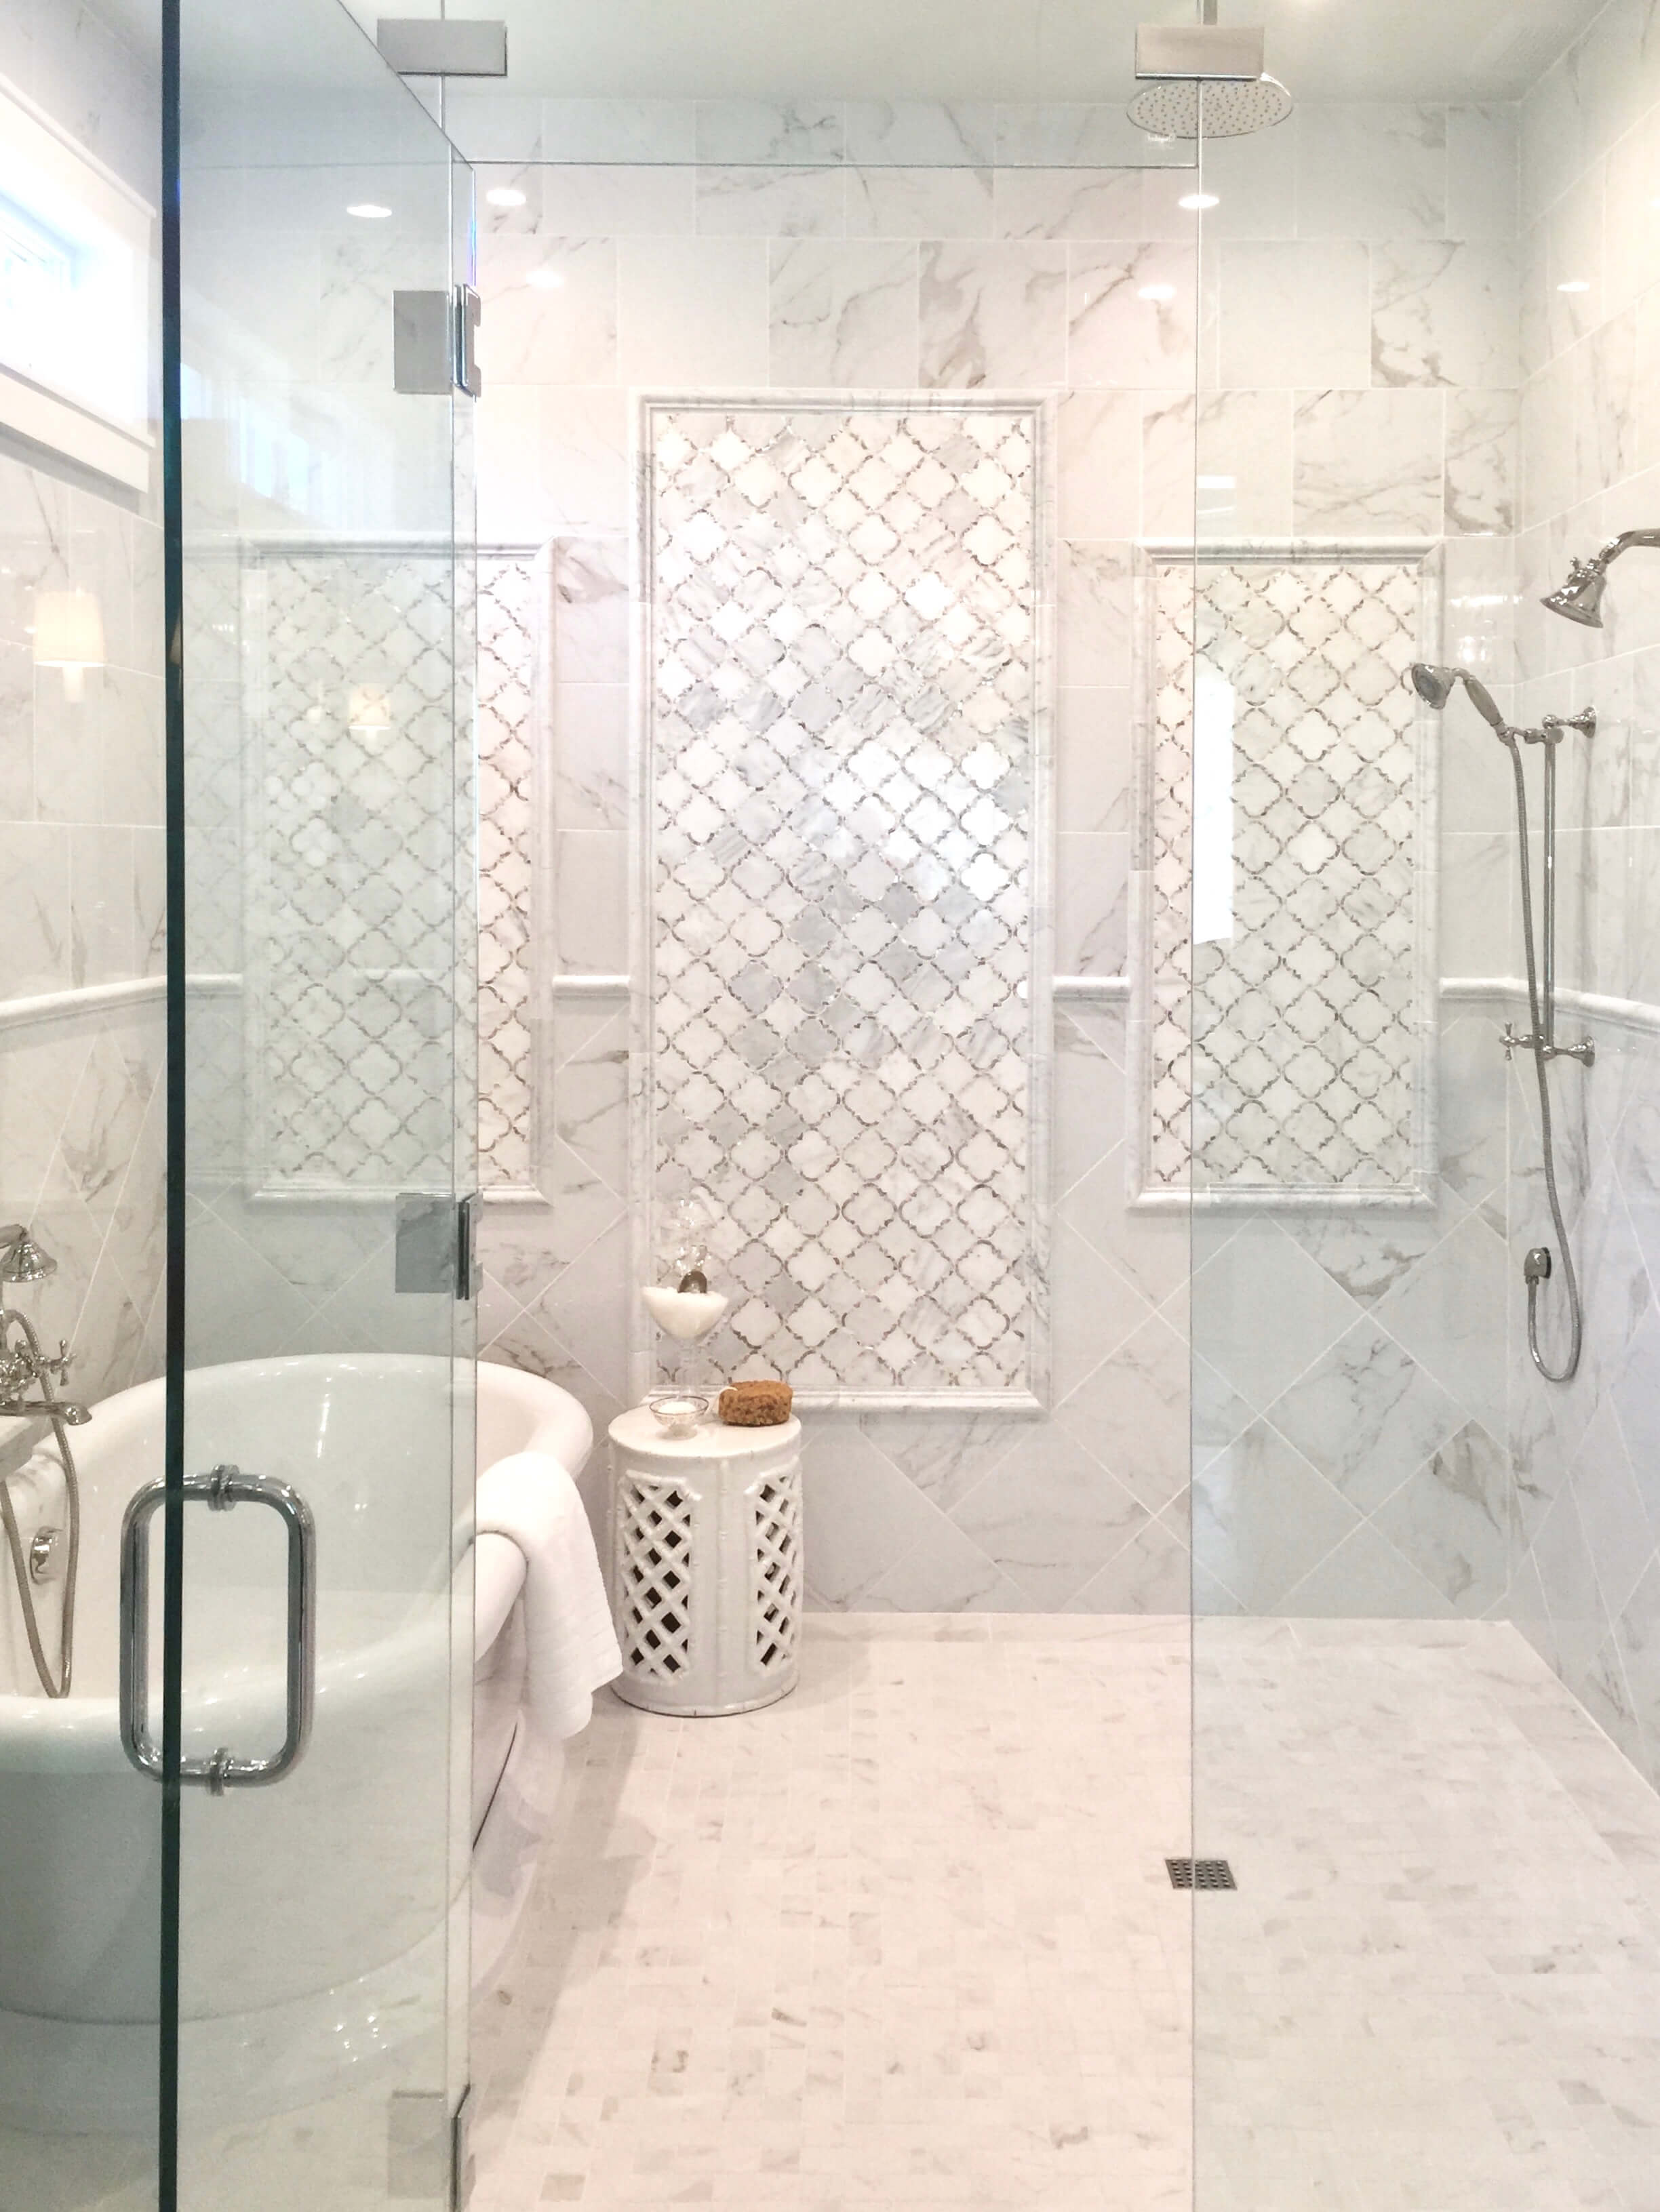 The master bath had a walk-in bathing room with the tub in the enclosed shower area. White marble tile covered the walls and floor. Designed by Chairma Design Group #bathroomdesign #freestandingtub